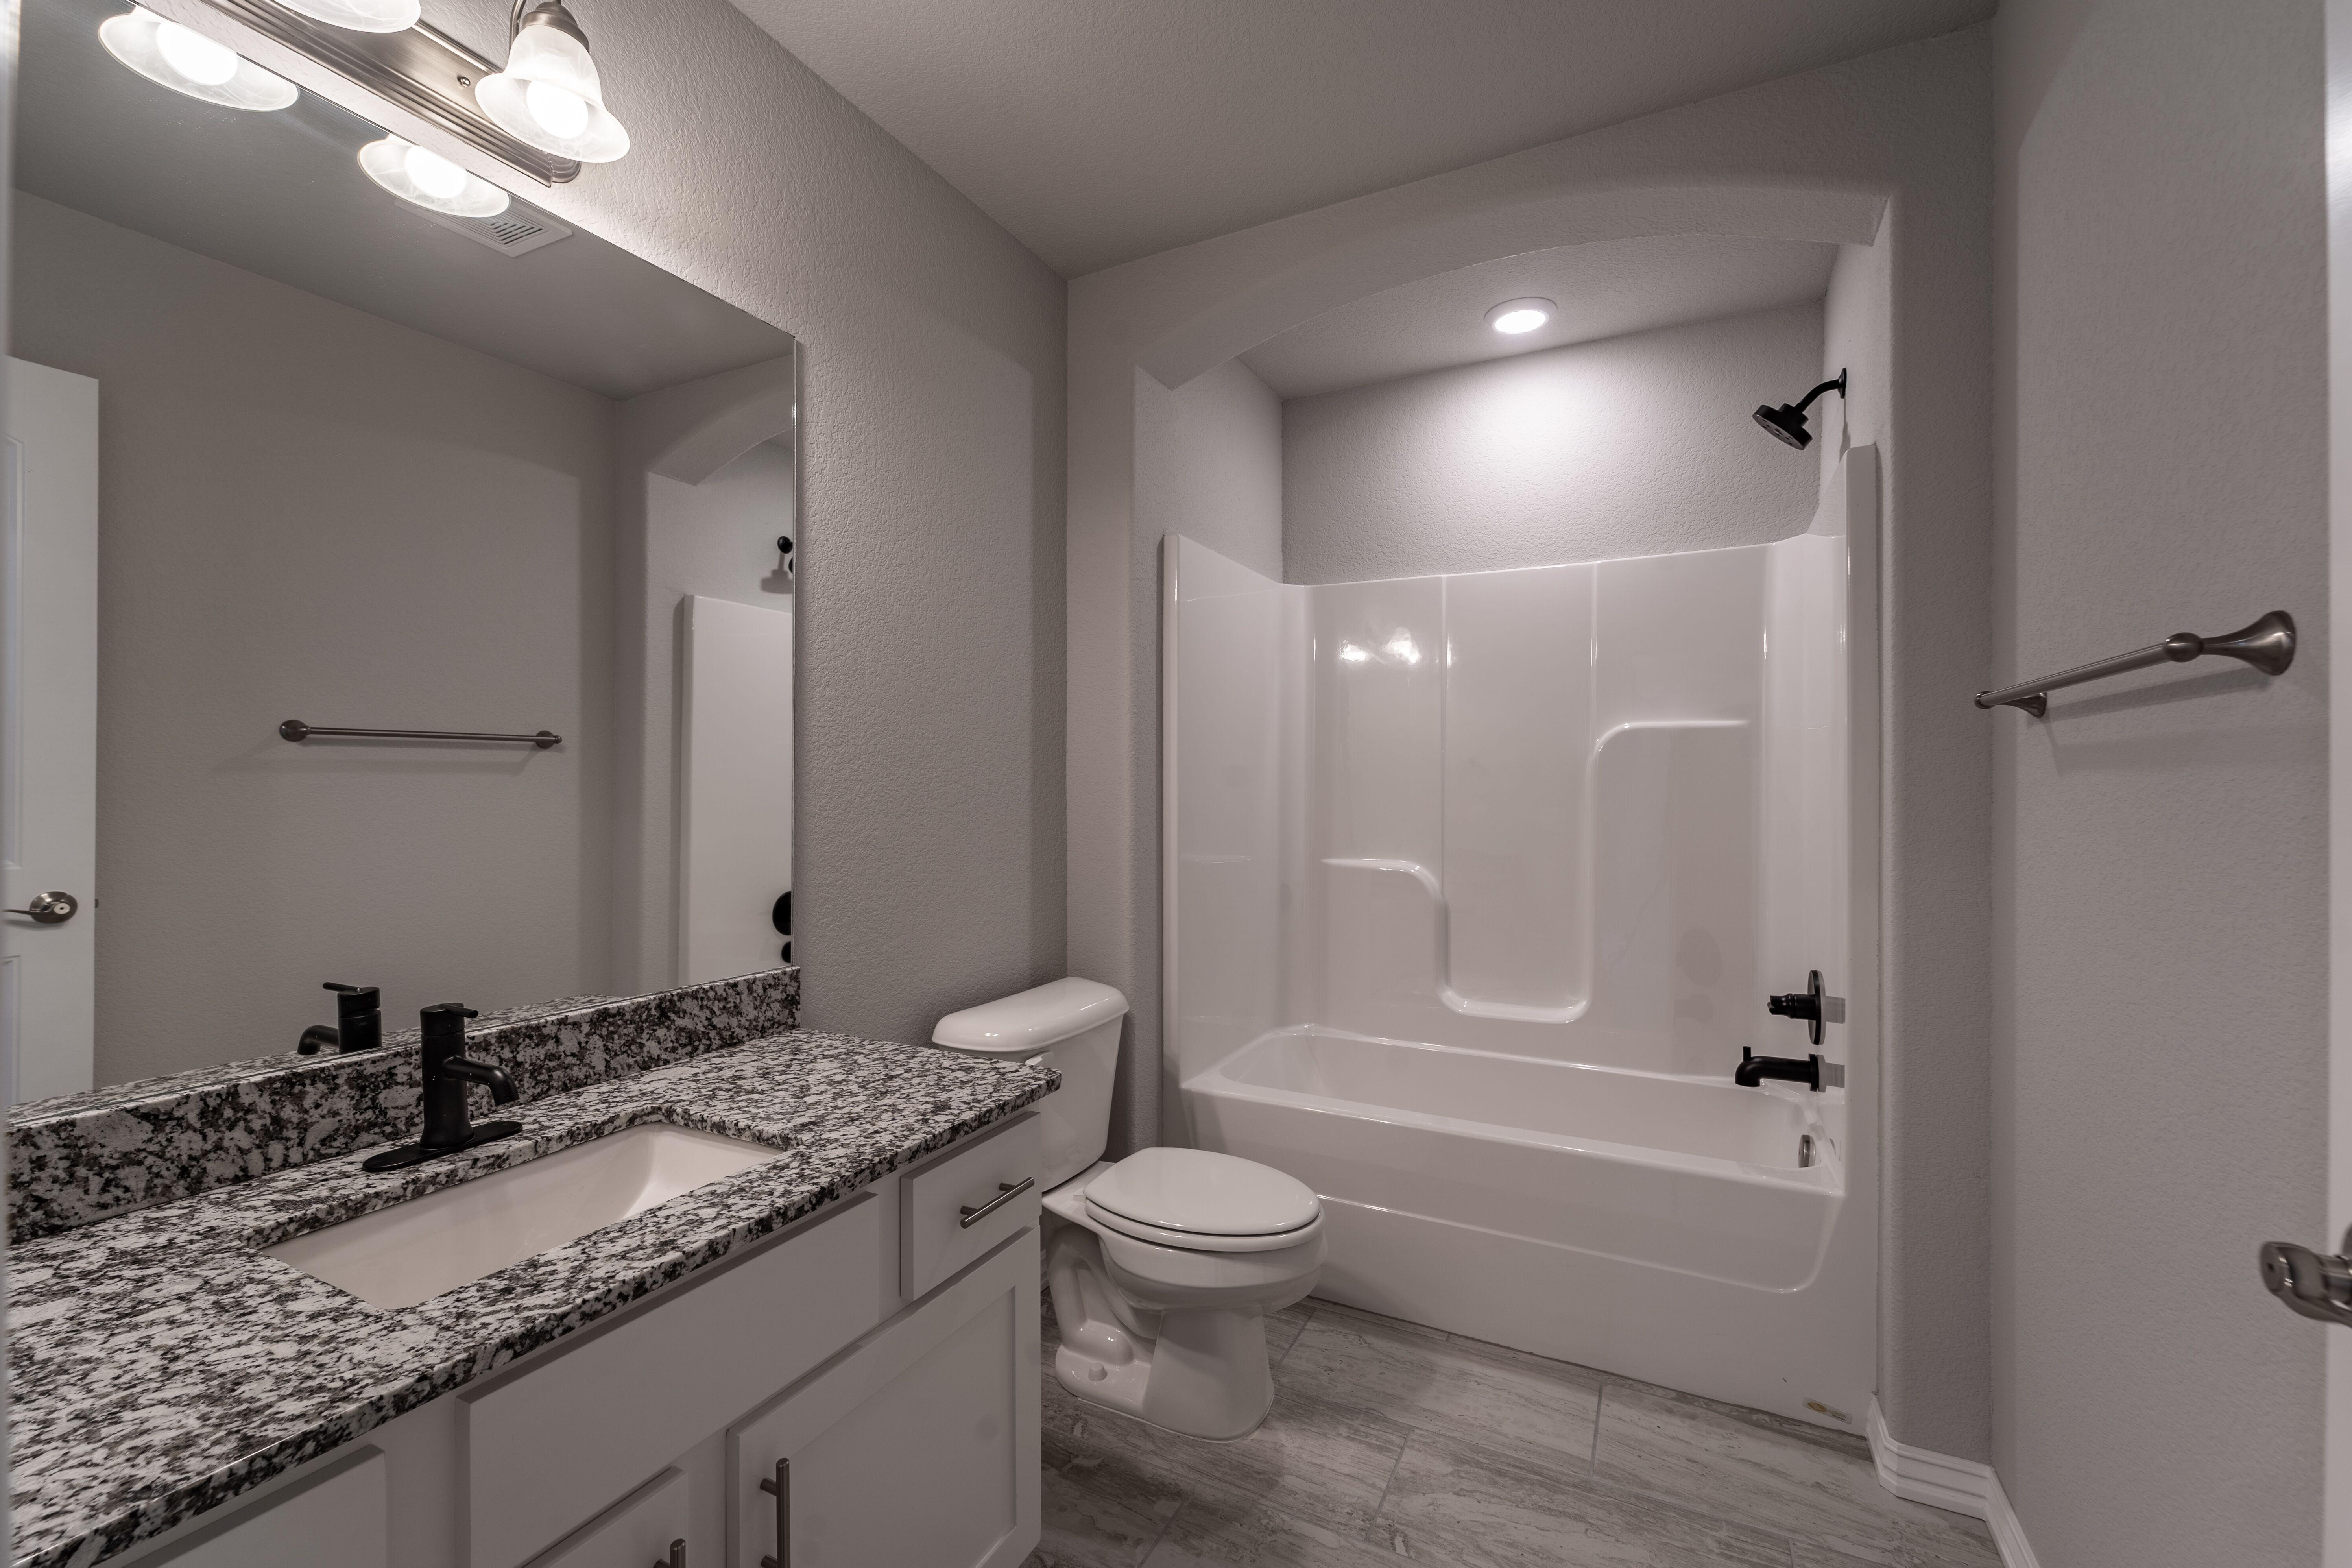 Bathroom featured in the 1659 By Riverwood Homes - Arkansas in Fayetteville, AR